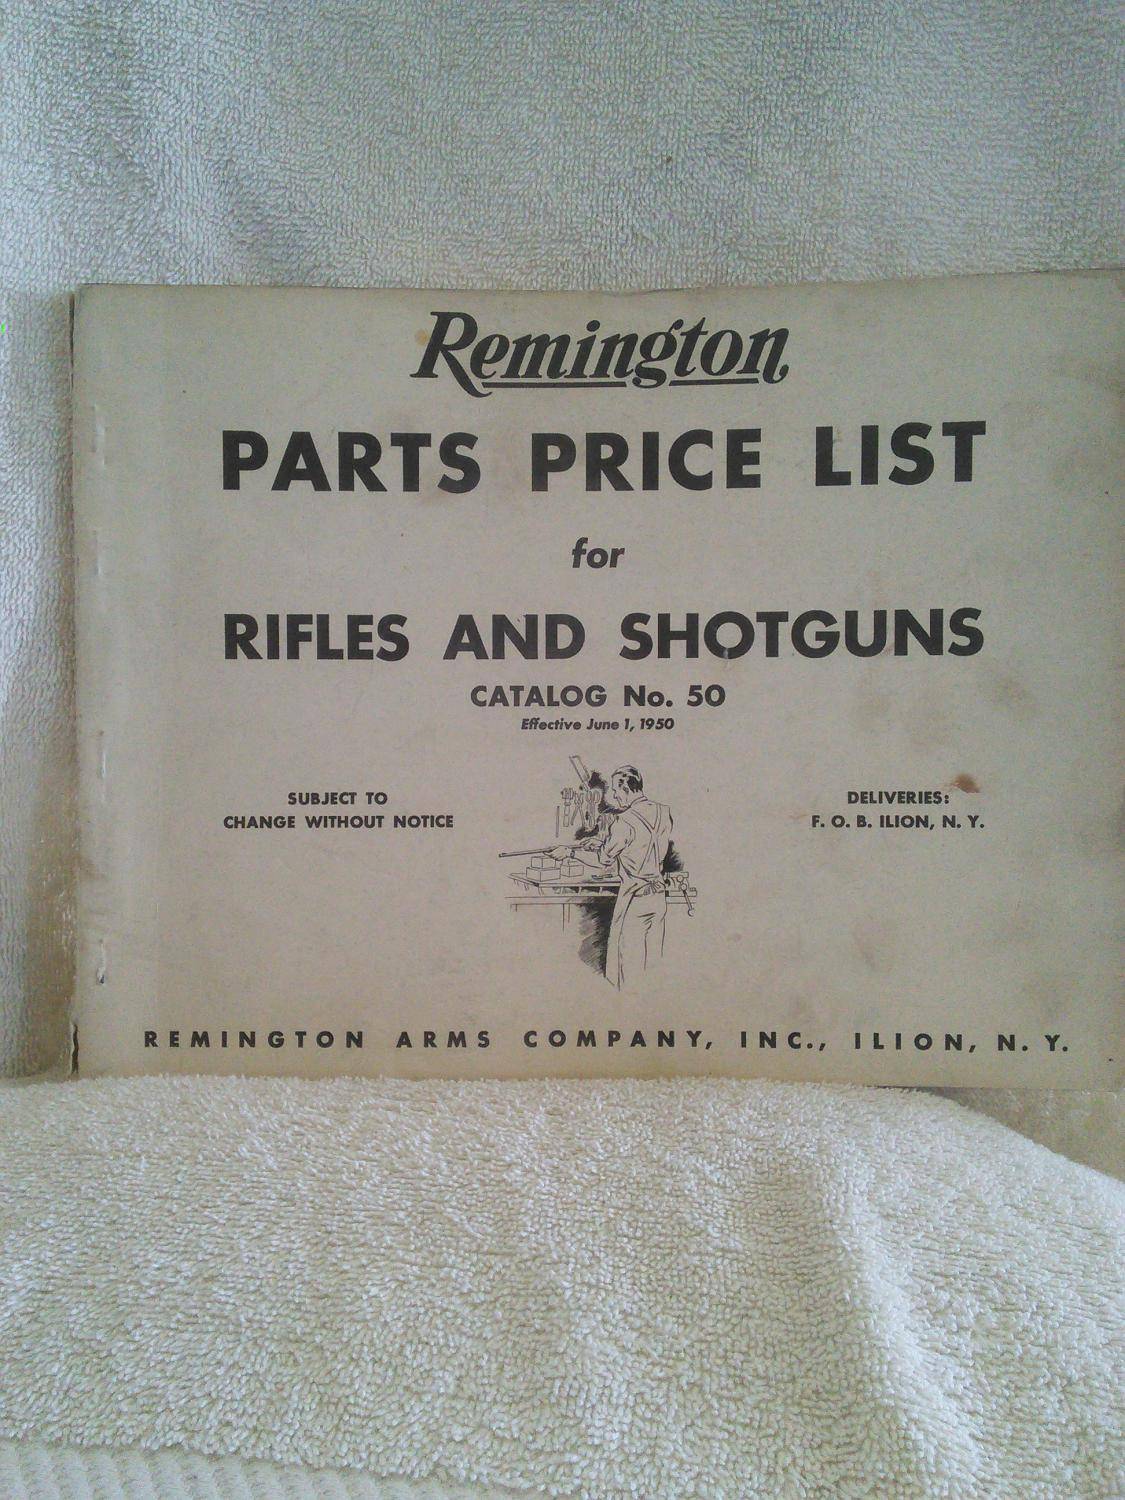 Remington Parts Price List for Rifles and